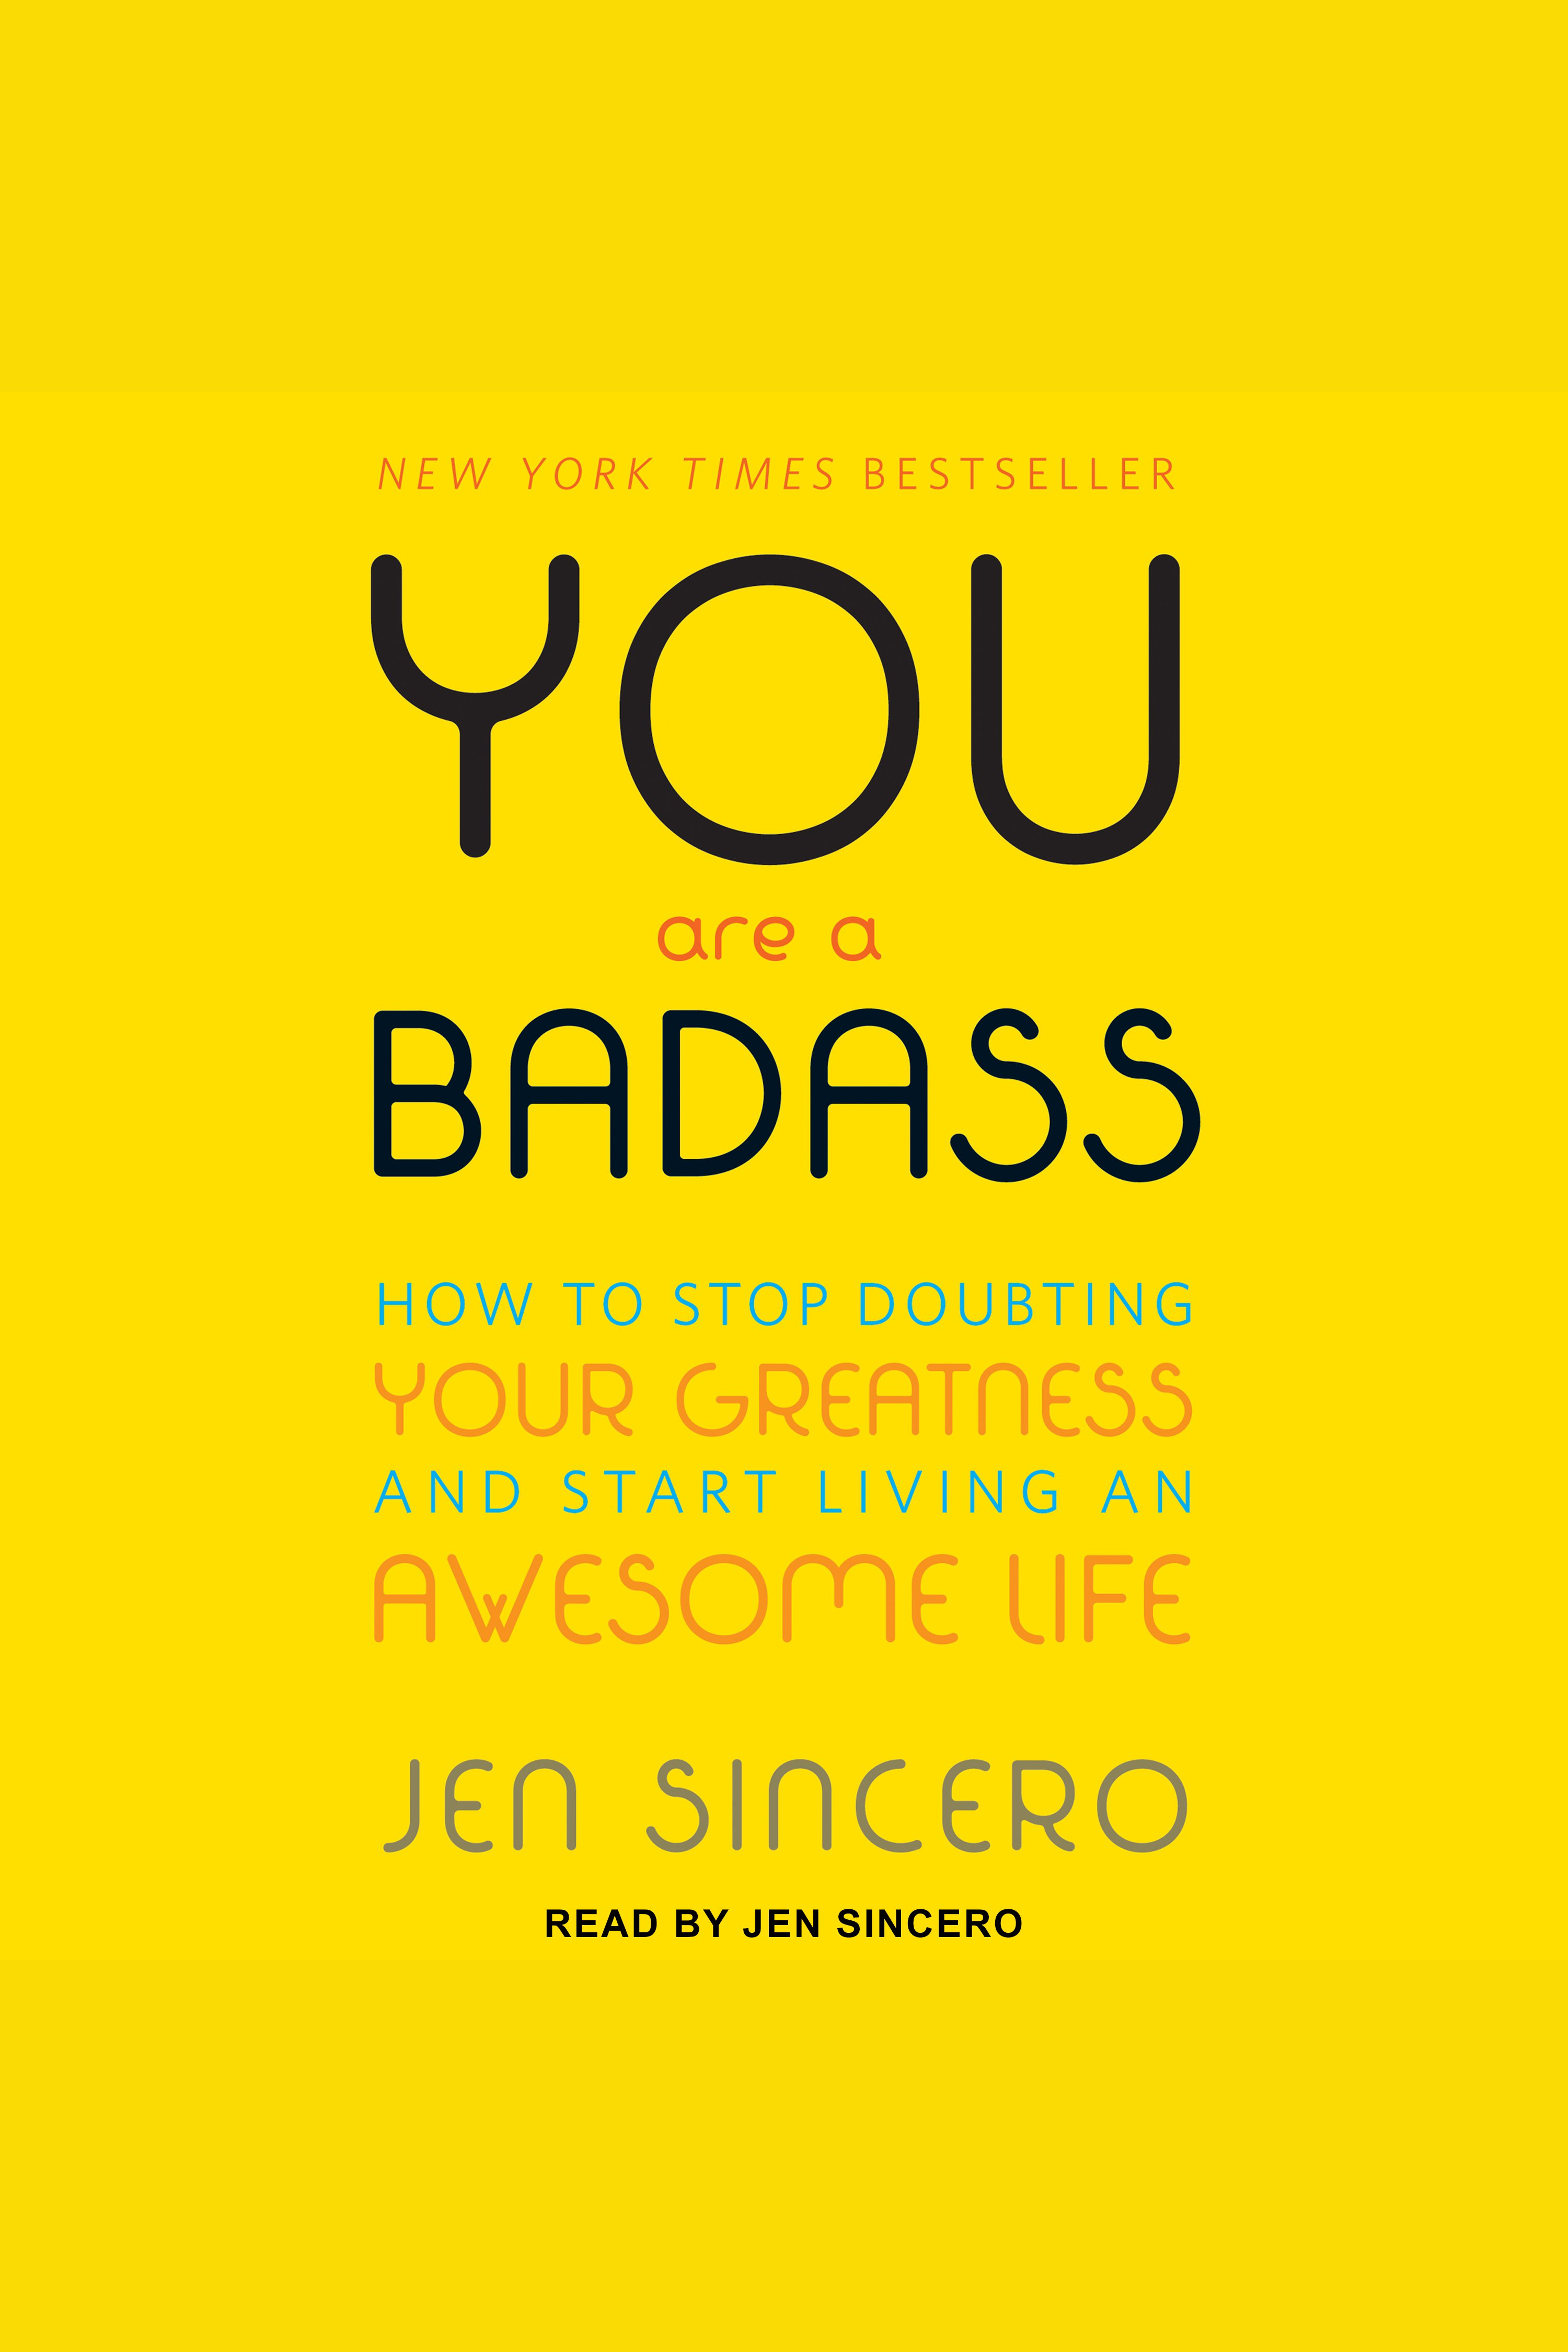 You Are a Badass:How to Stop Doubting Your Greatness and Start Living an Awesome Life